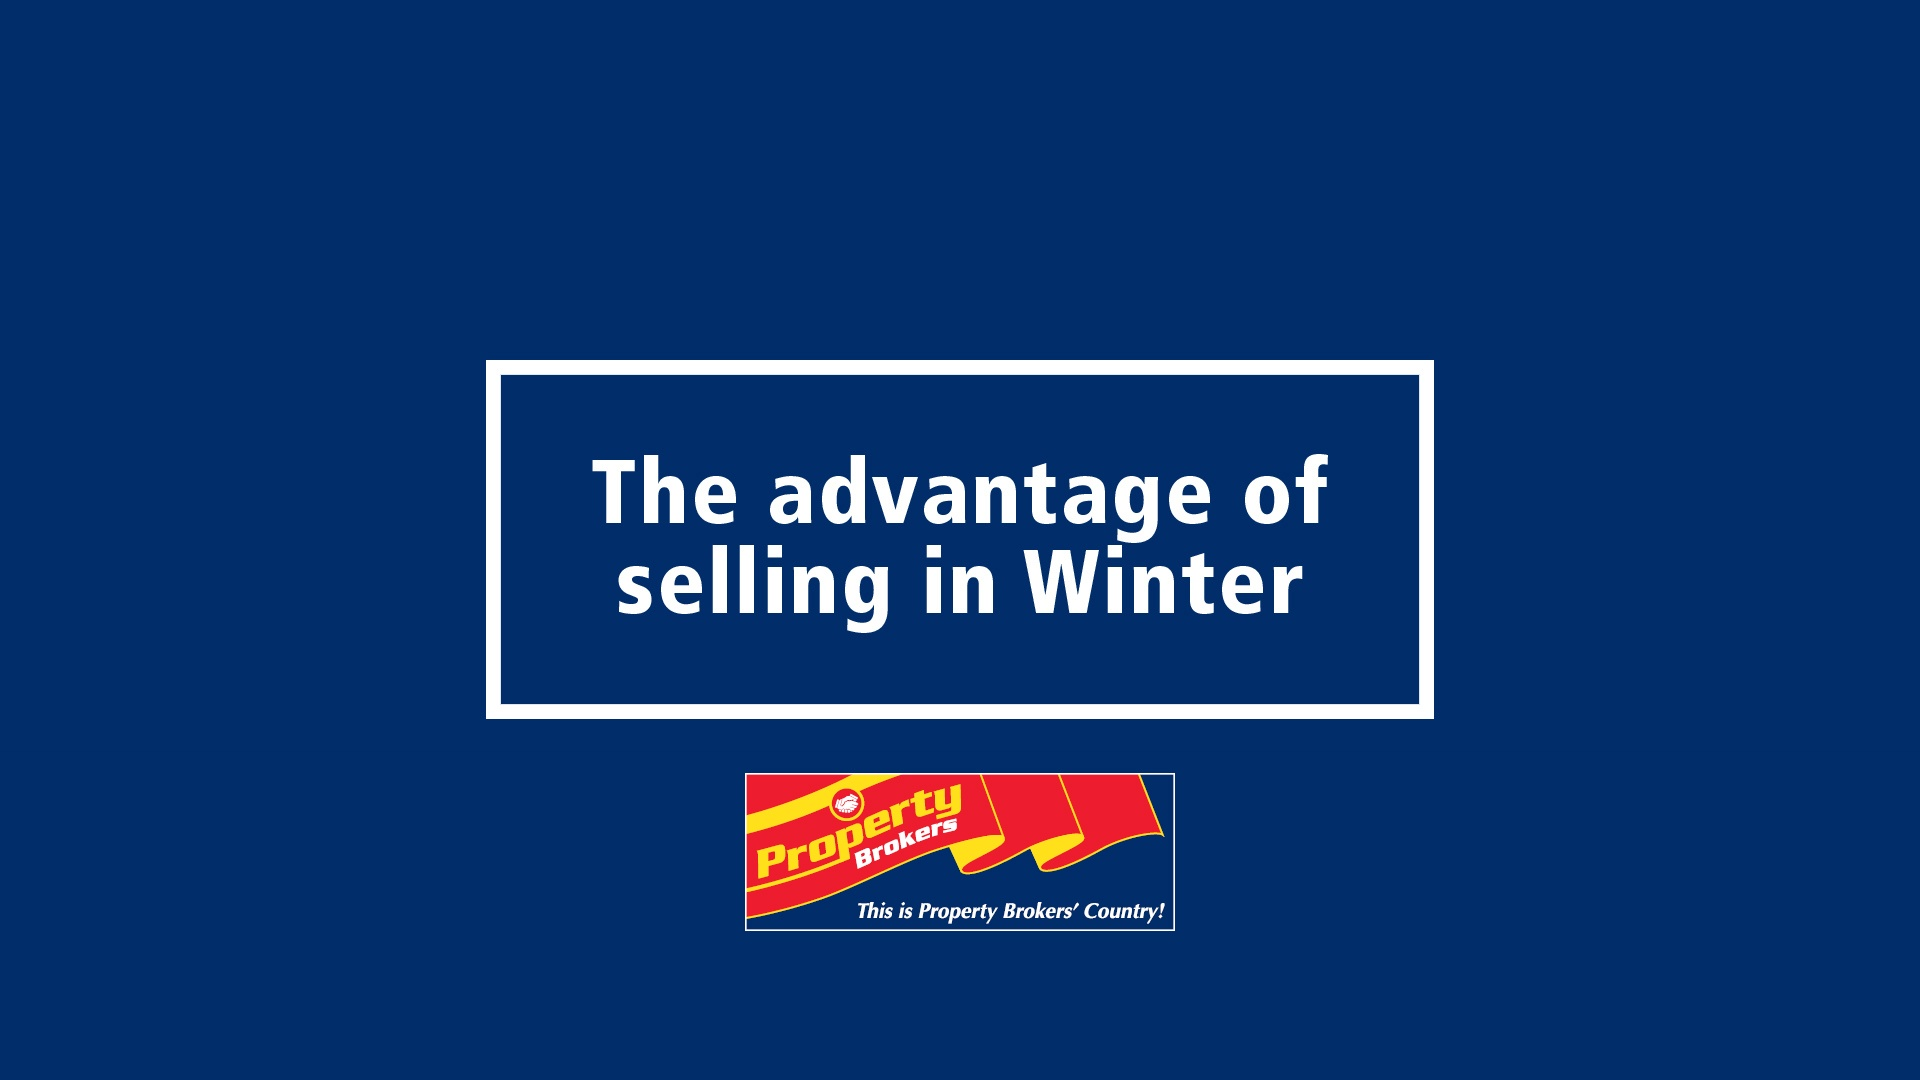 The advantage of selling in Winter